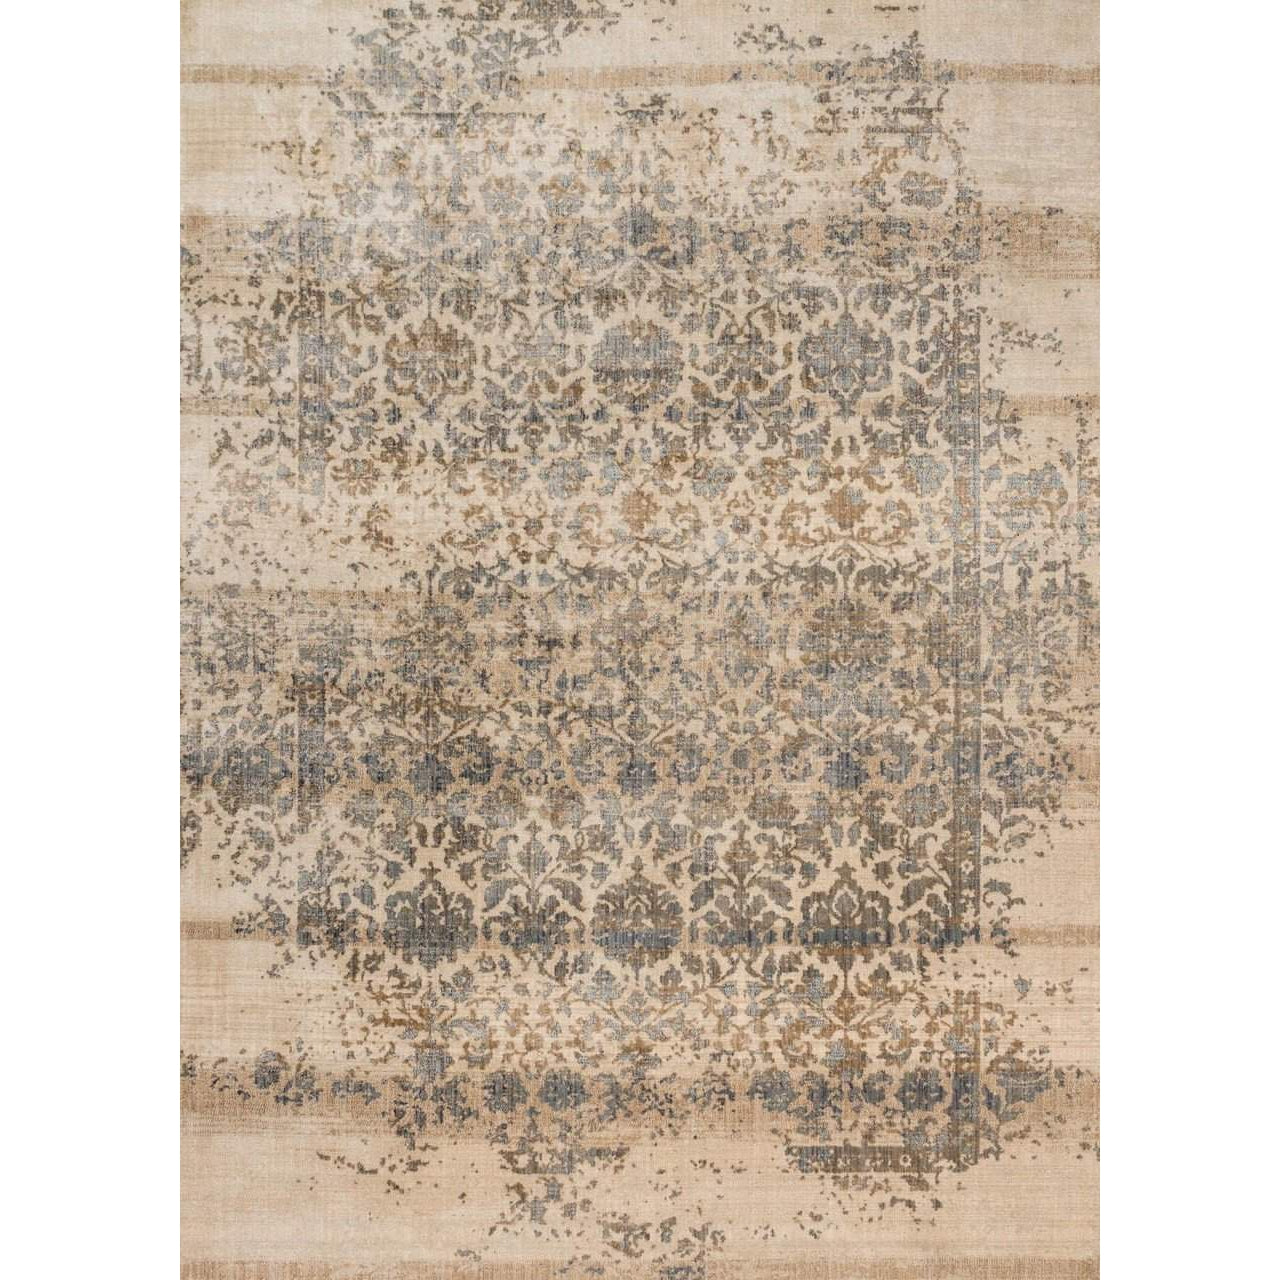 Joanna Gaines of Magnolia Home Kivi Rug Collection - Ivory / Quarry